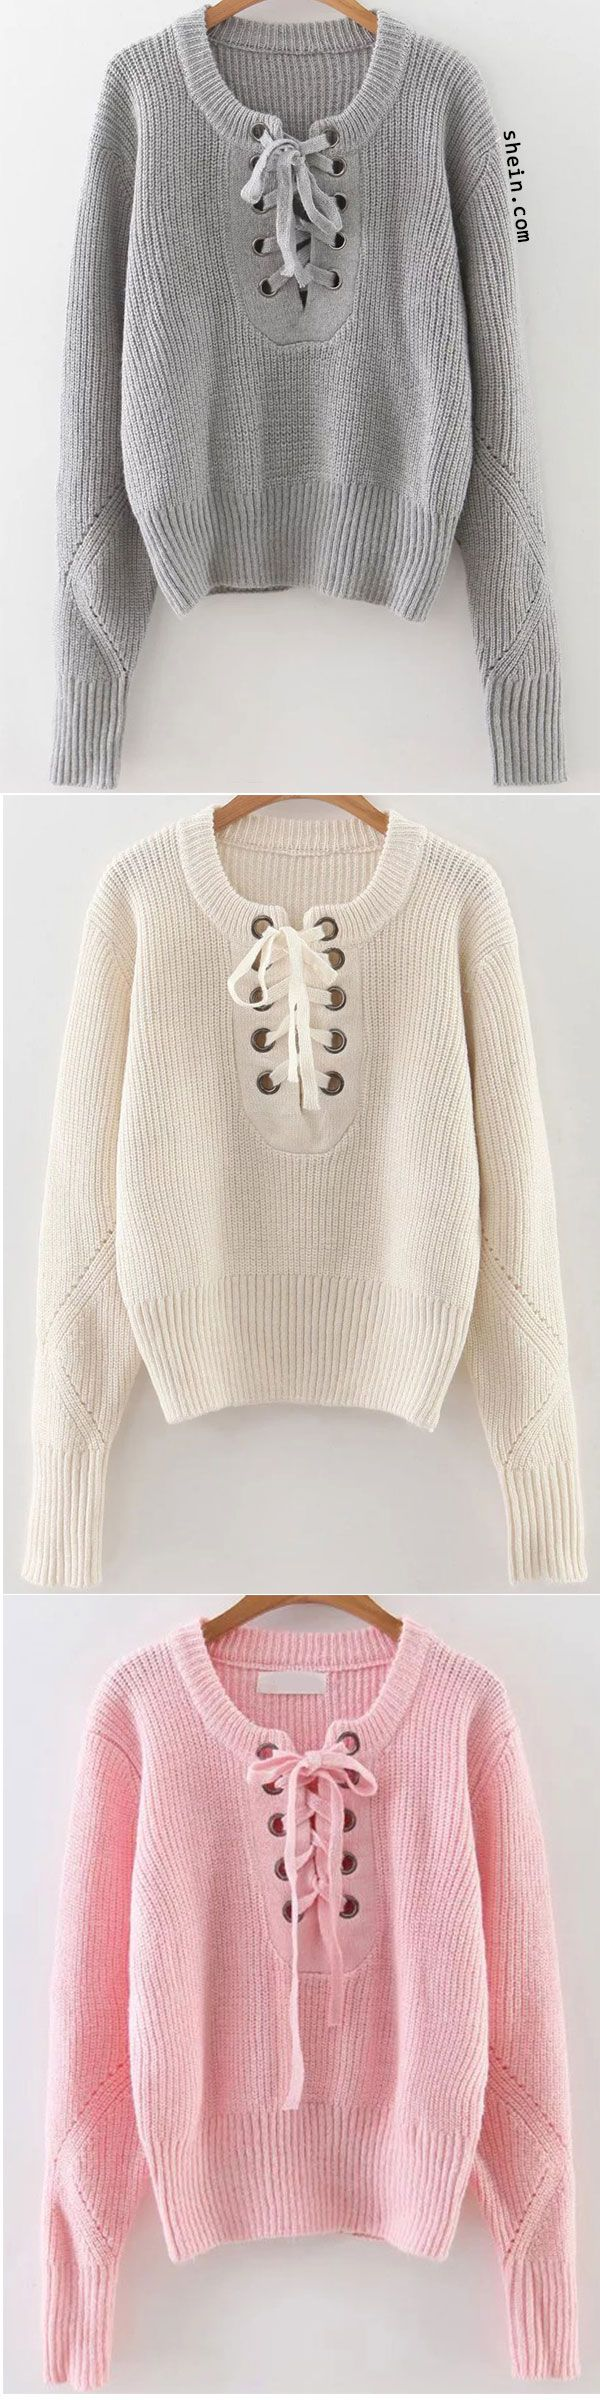 This basic sweater is suitable for a wide range of combinations.